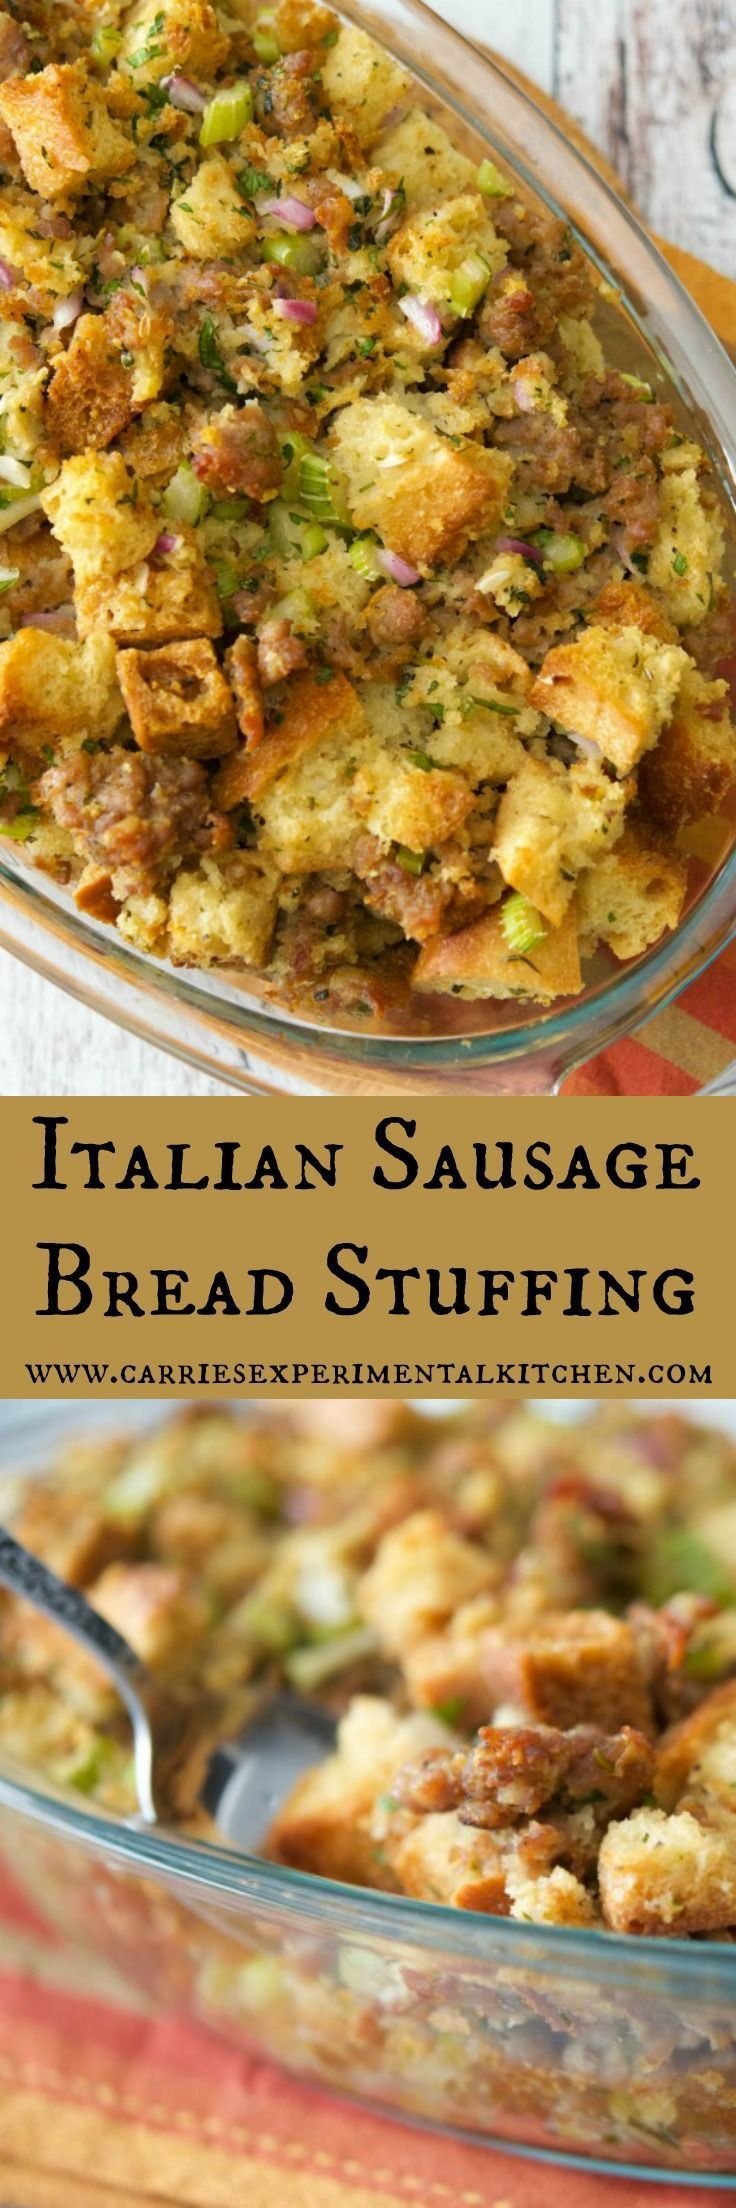 Italian Sausage Bread Stuffing #thanksgivingrecipes